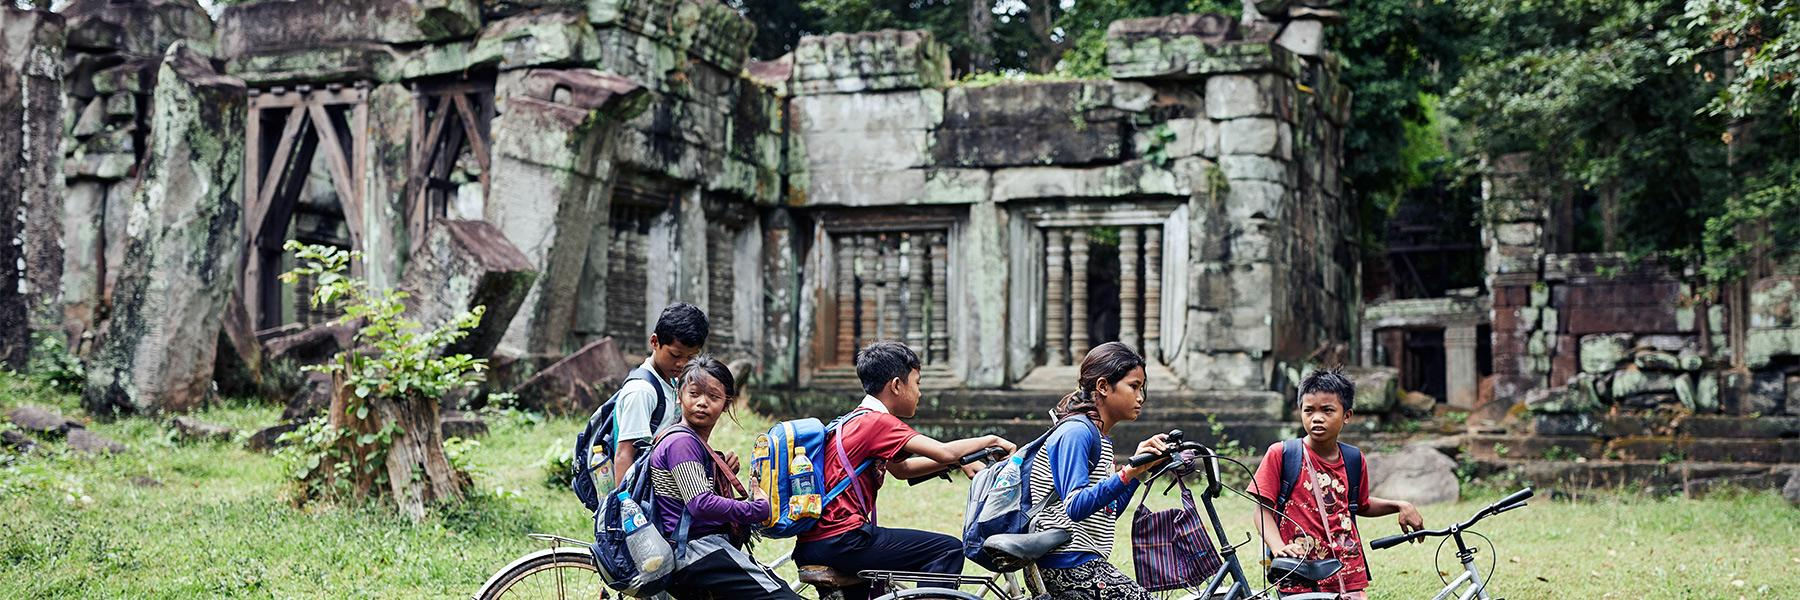 Why Visit The Remote Khmer Temples?